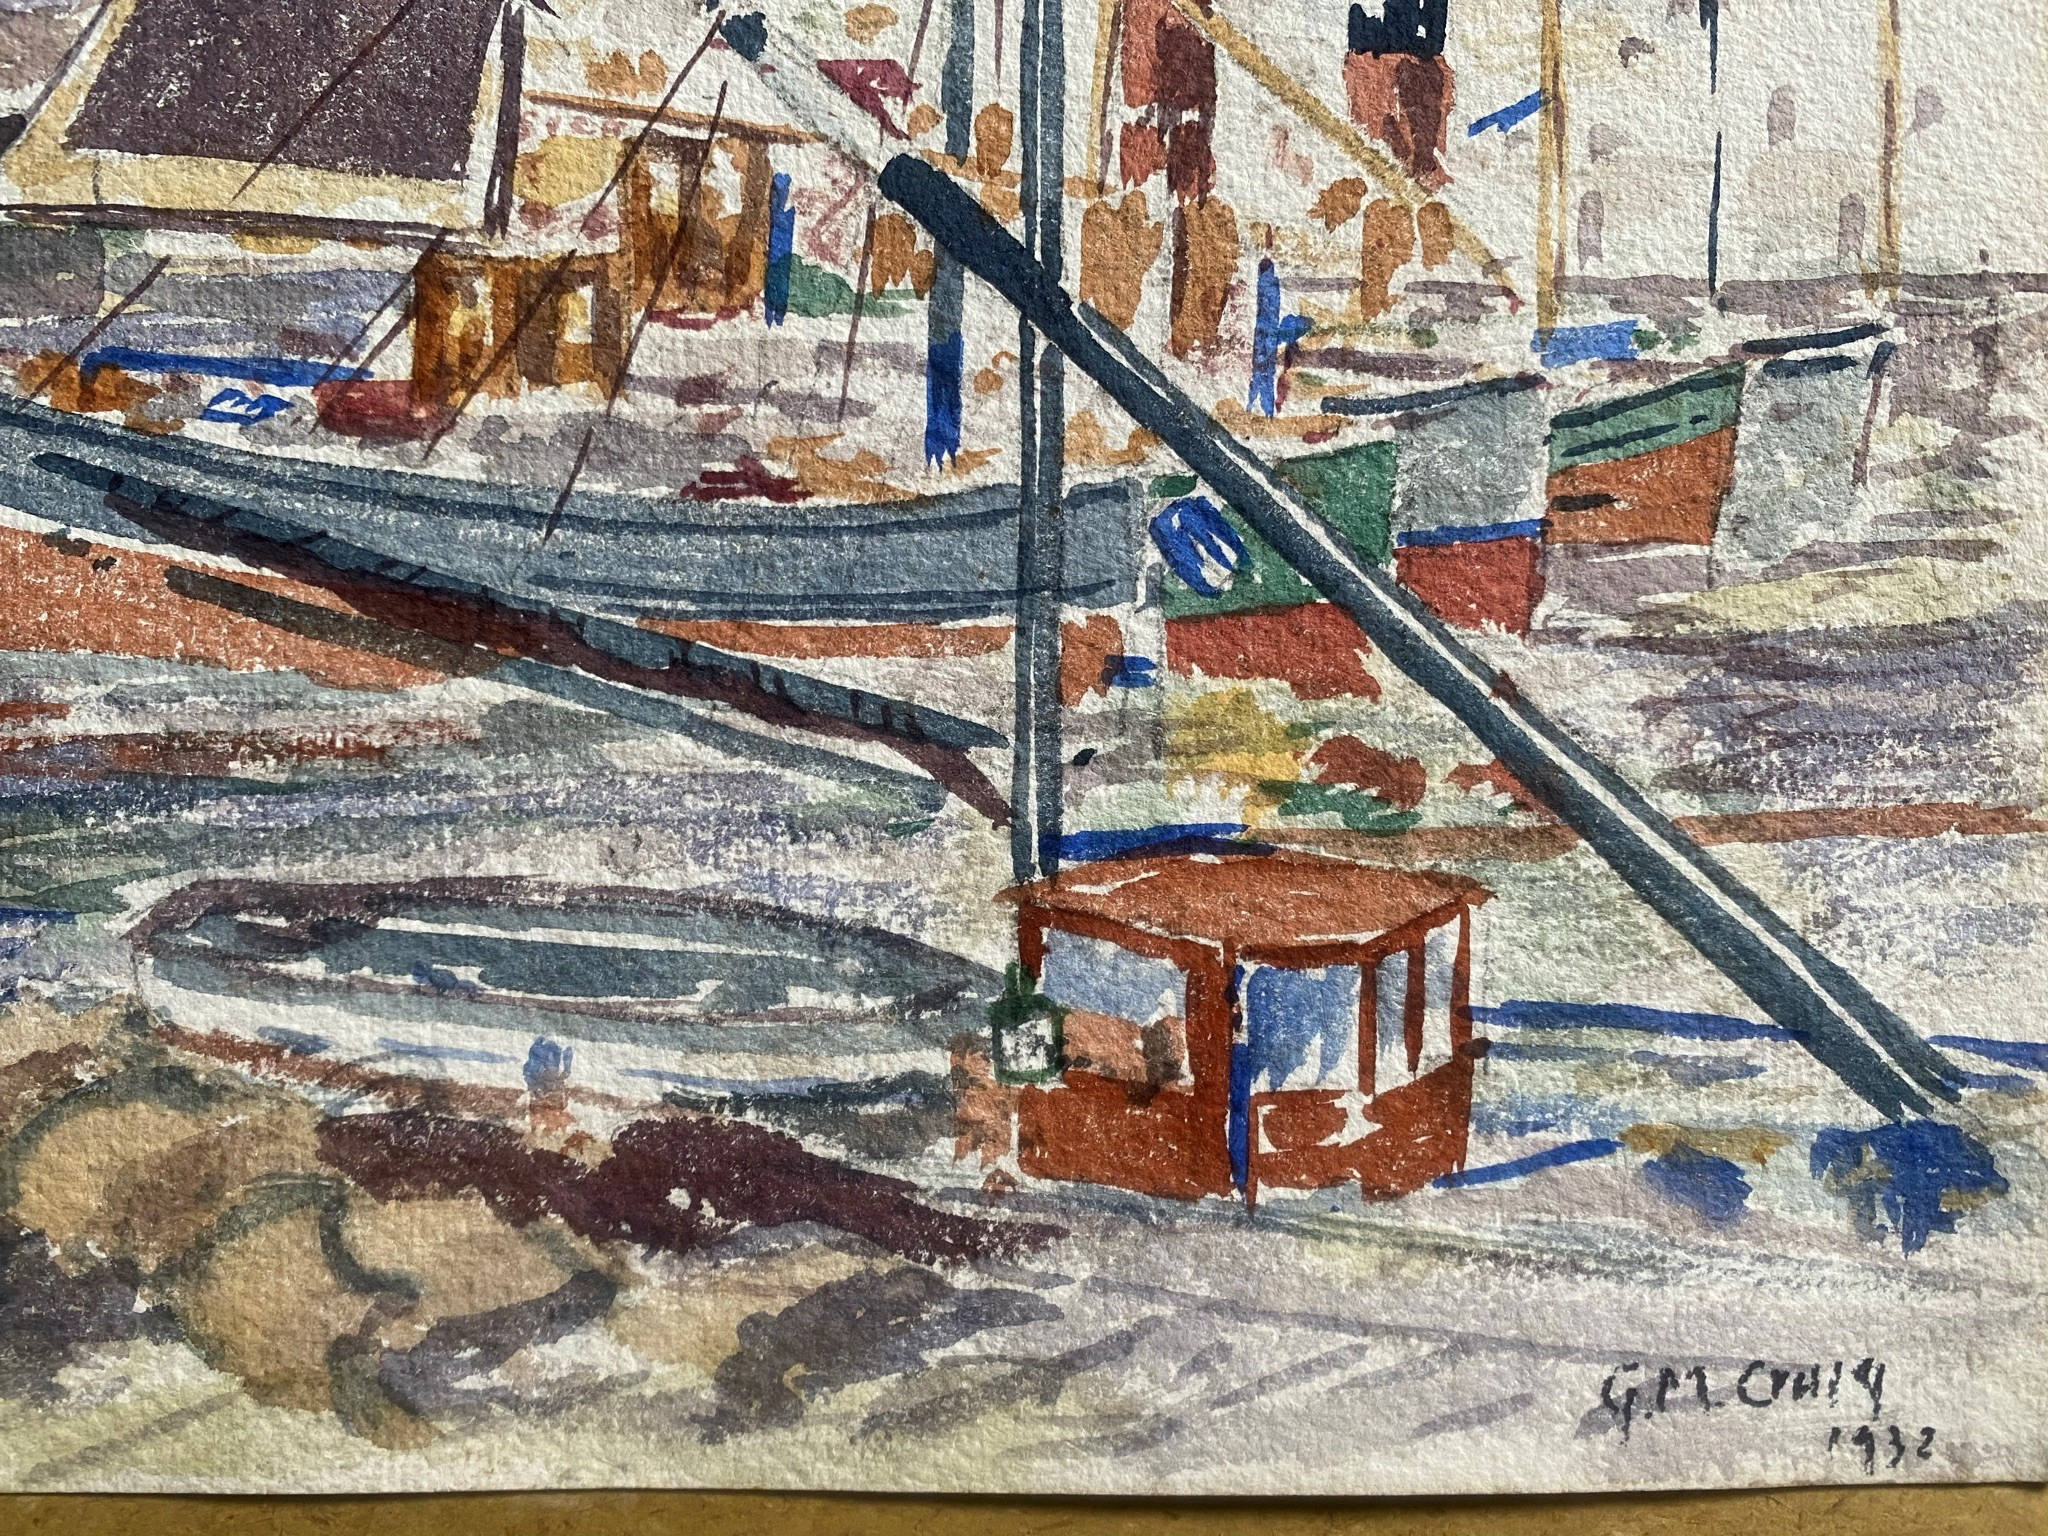 Watercolour signed G. M. Craig, (Gertrude Mary) St Monance - Image 3 of 4